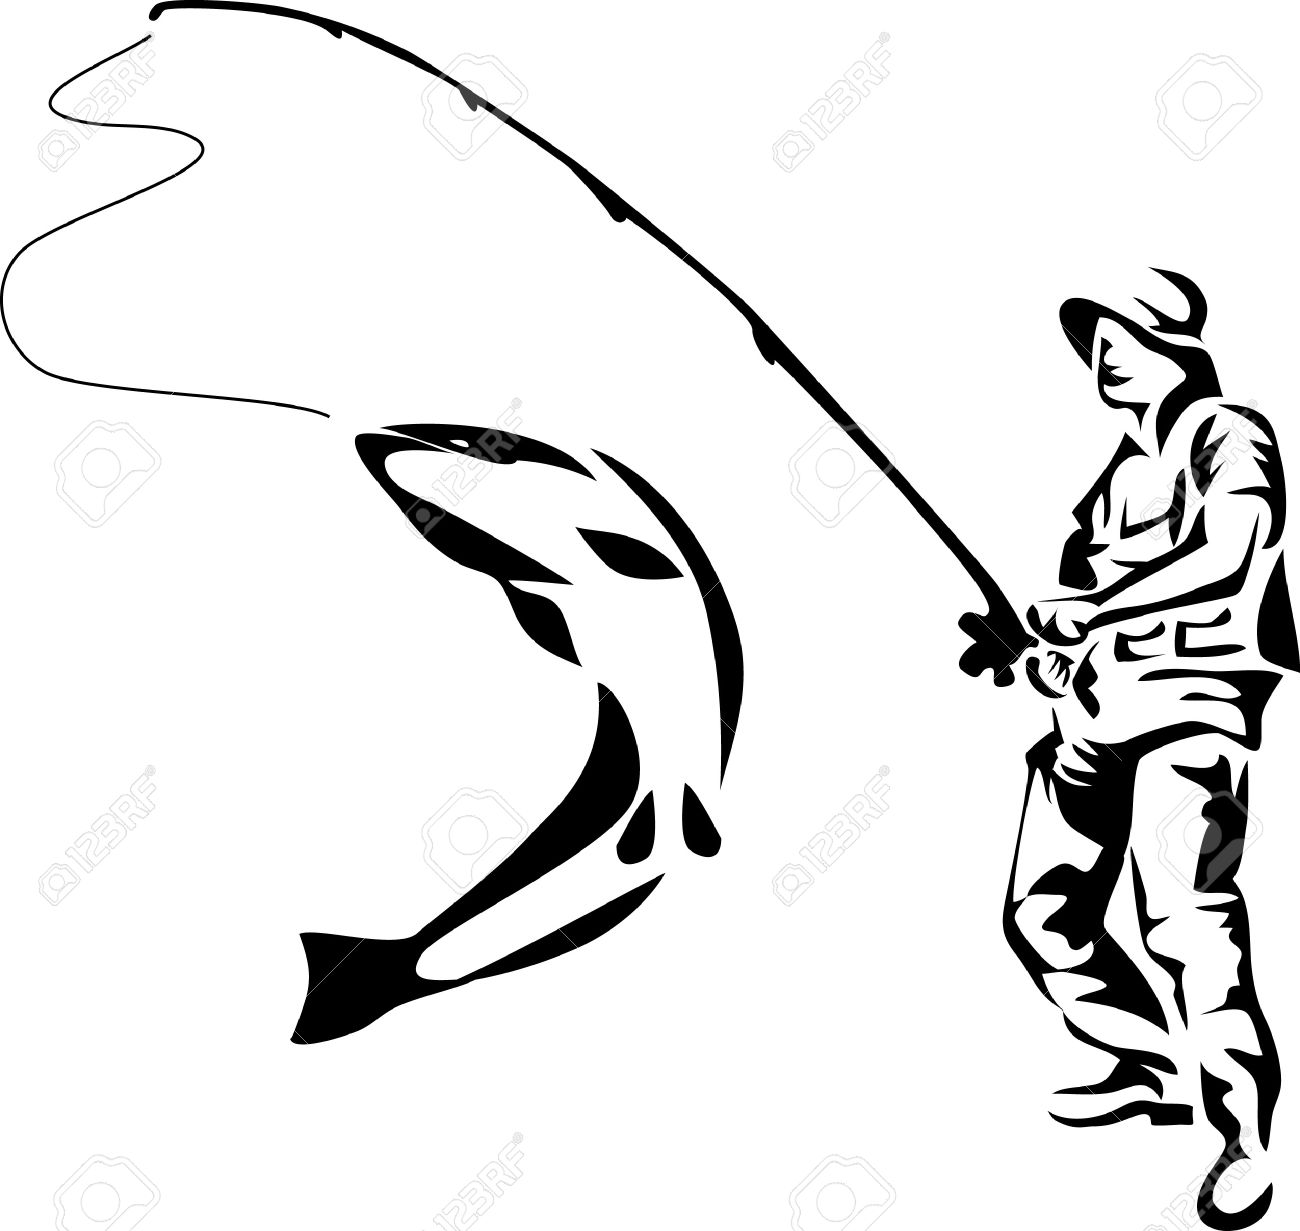 1300x1231 Fly Fishing Clipart Black And White Amp Fly Fishing Clip Art Black